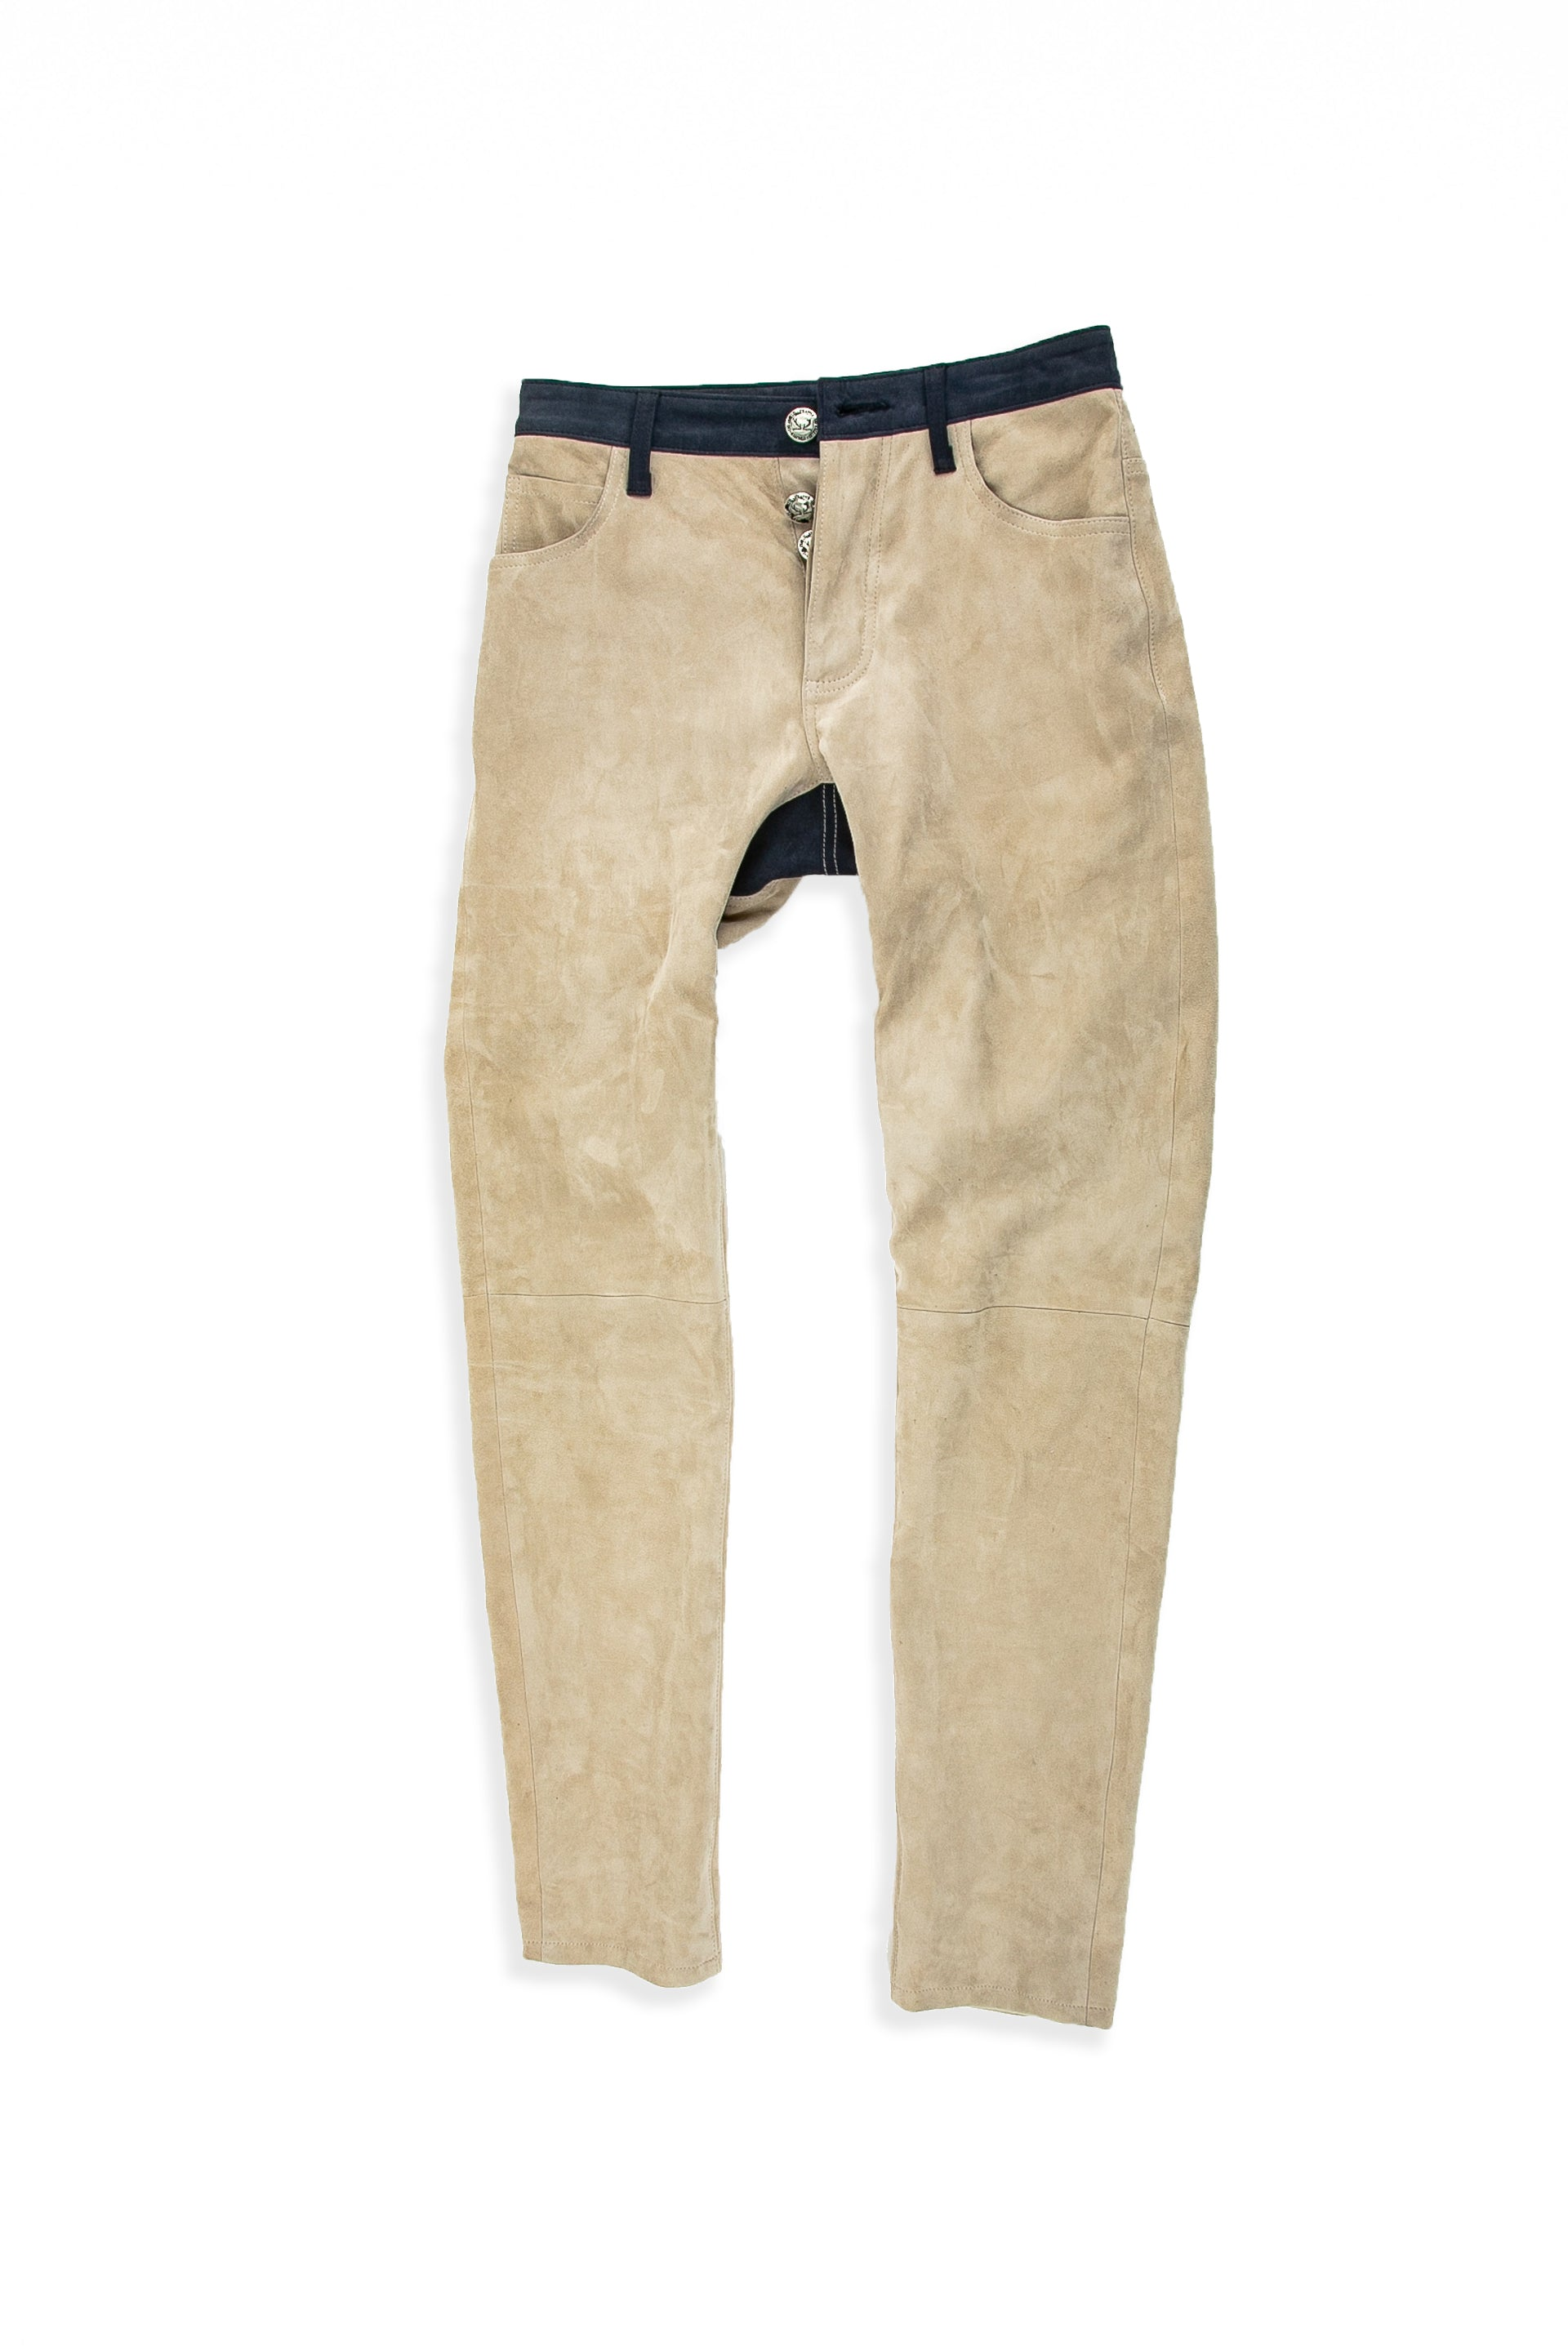 Front of Suede Jean in Beige